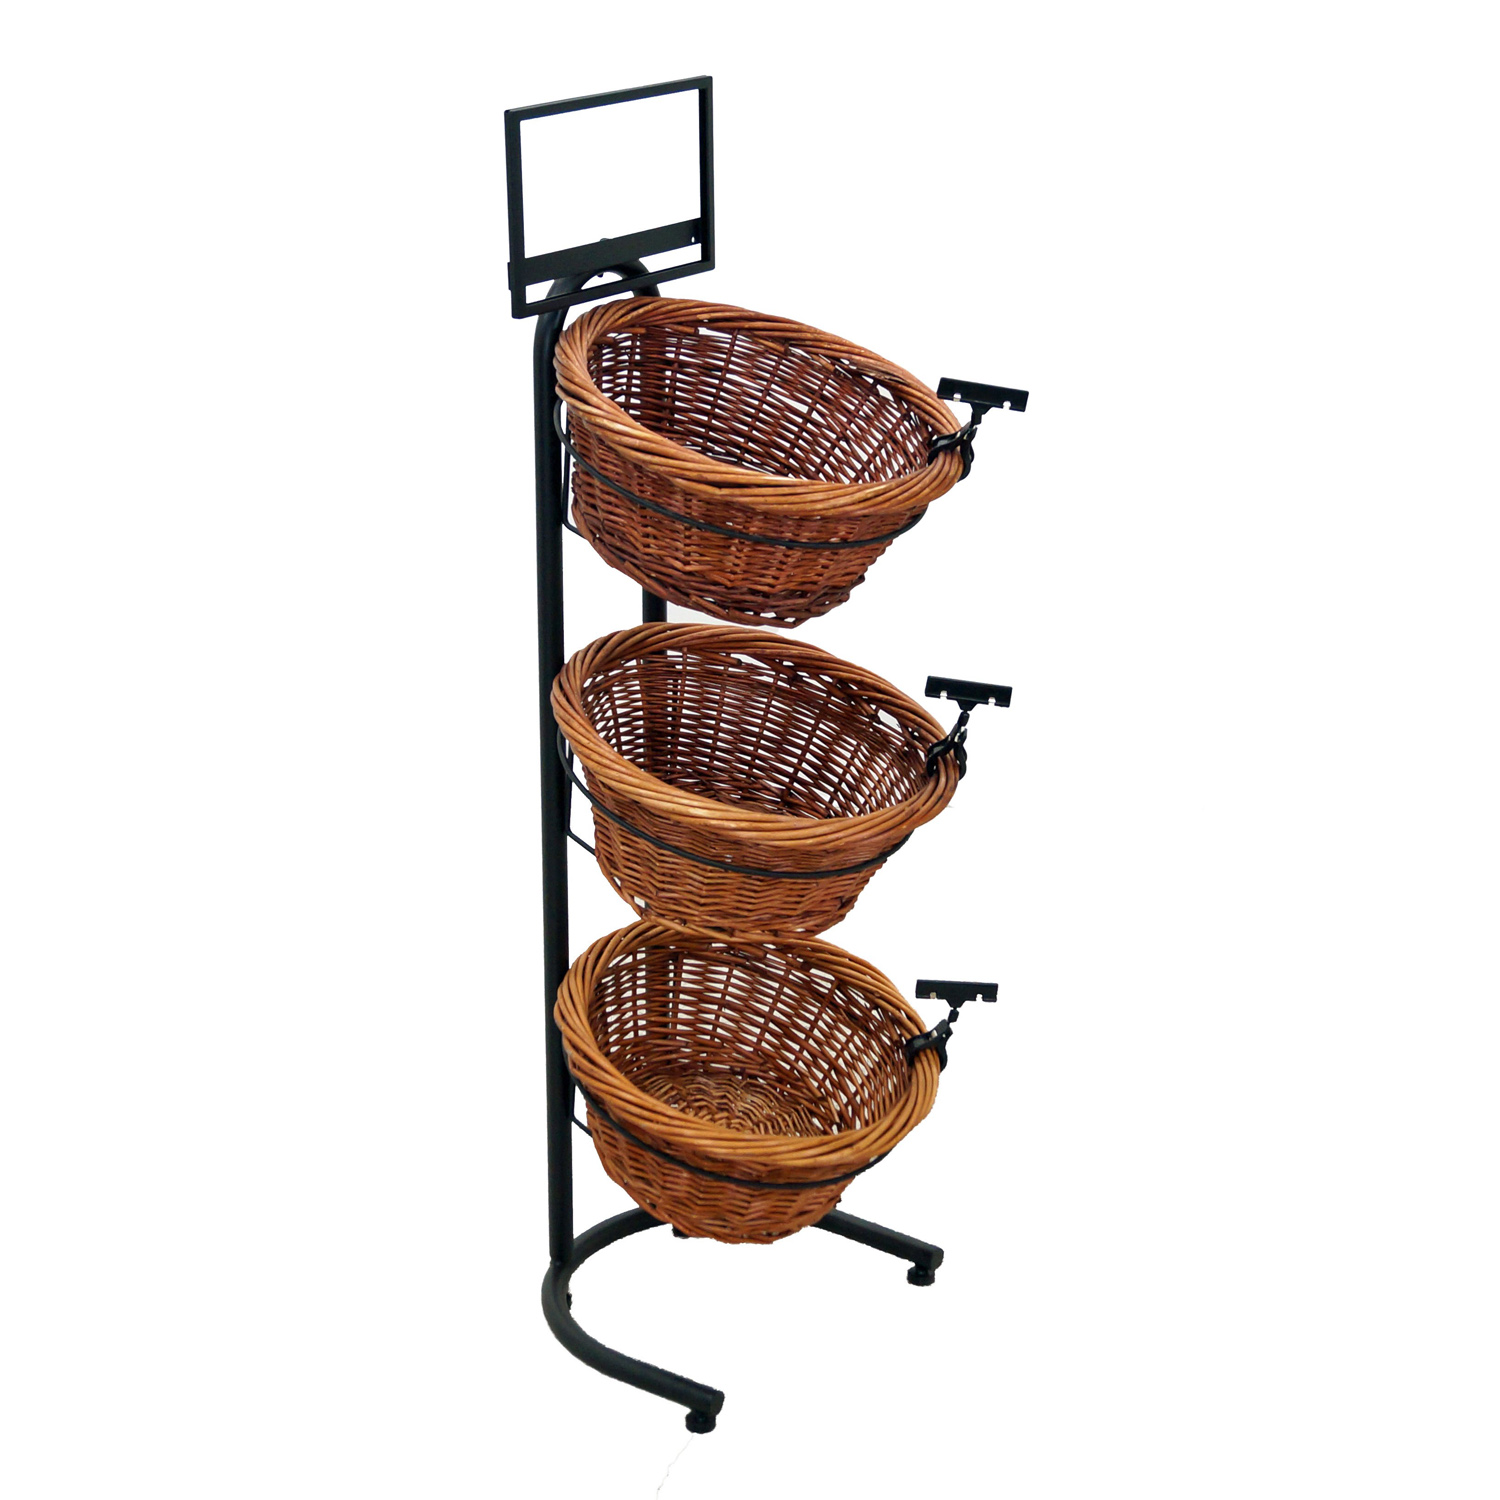 3 Tier Round Willow Basket Display Rack Buy Acrylic